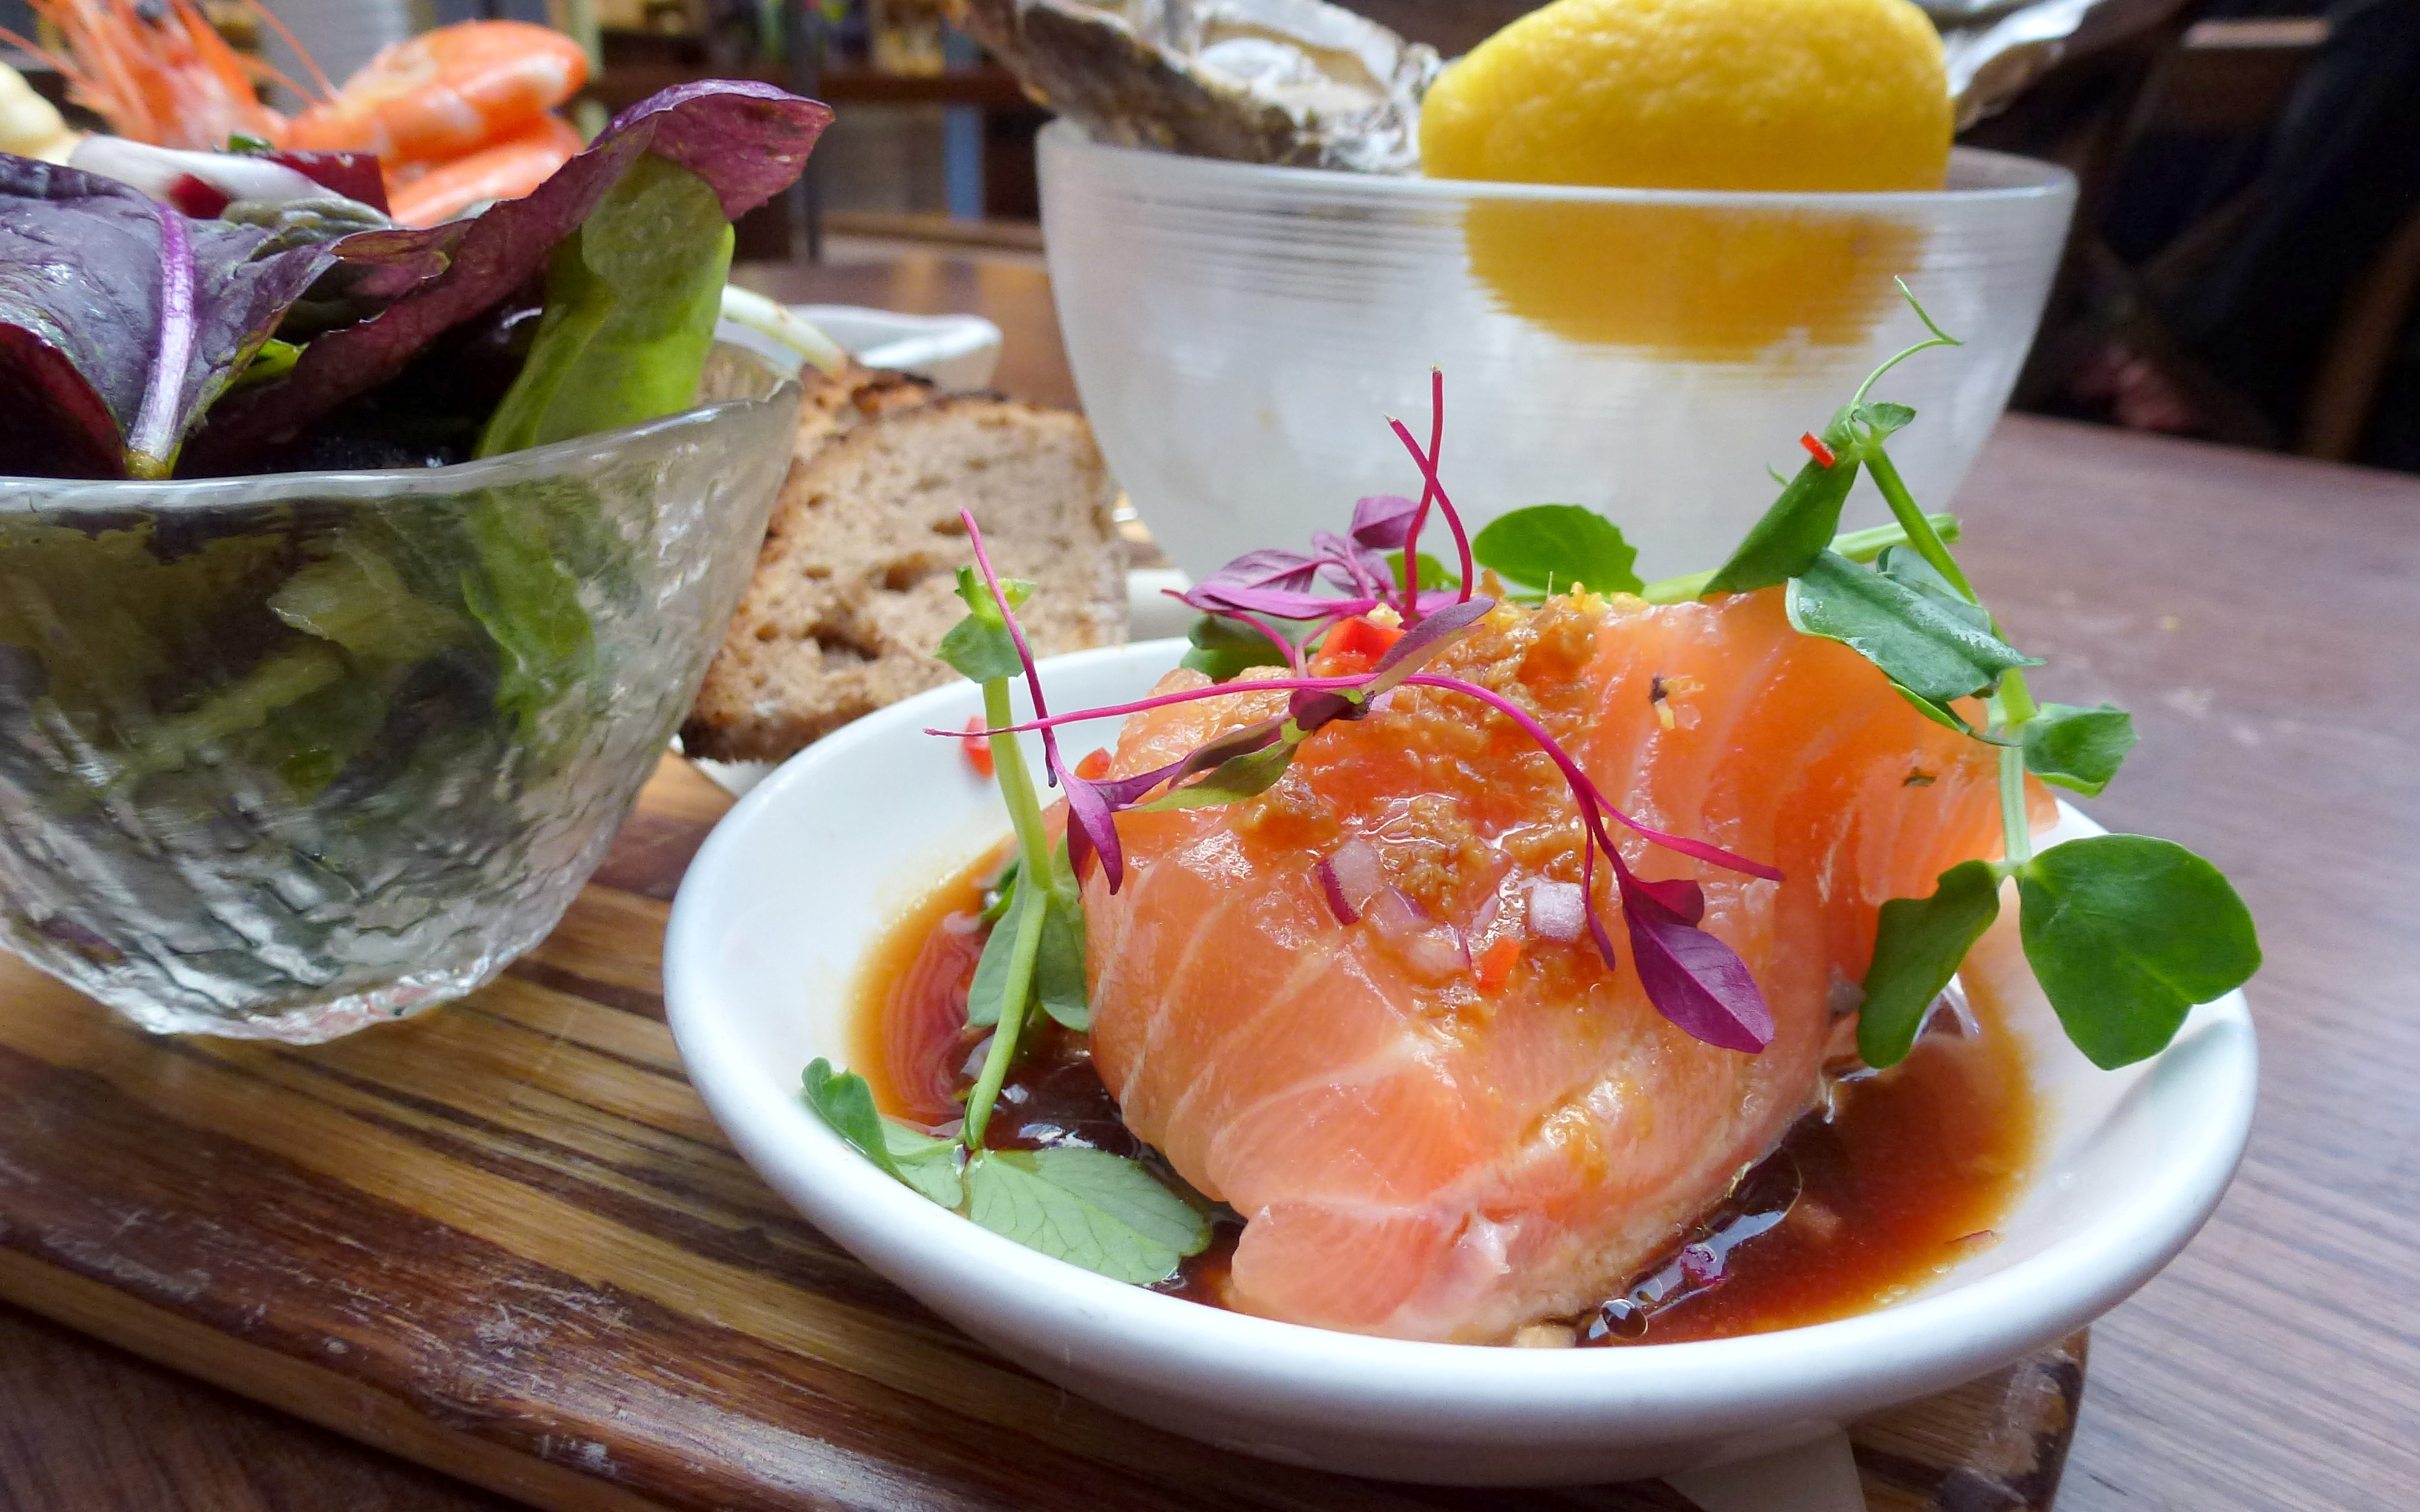 Surf Board rock oyster, salmon ceviche Wright Brothers